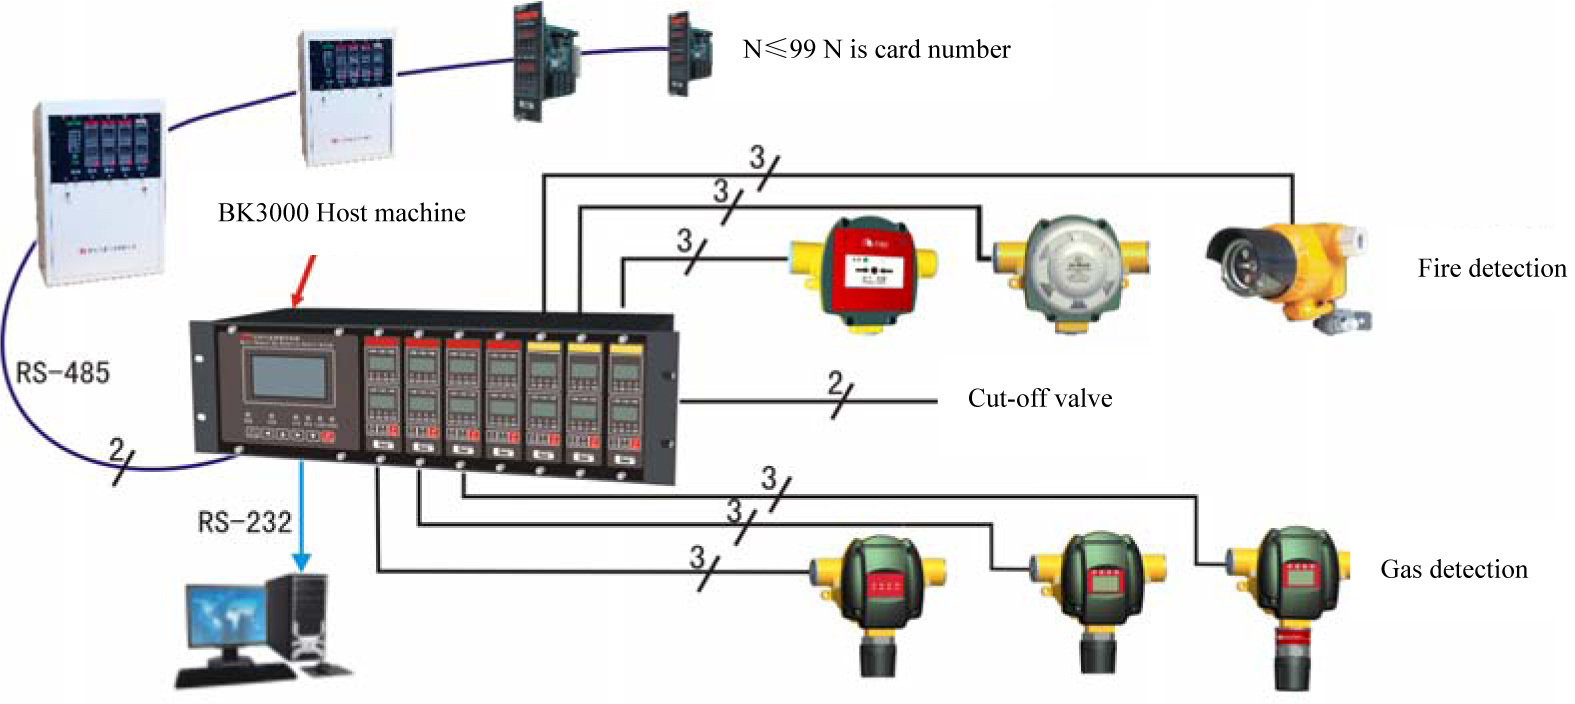 Infrared Flame Sensor Wiring Diagram Explained Diagrams China Ir Uv Explosion Proof Detector Fire Alarm Device Photos Beam